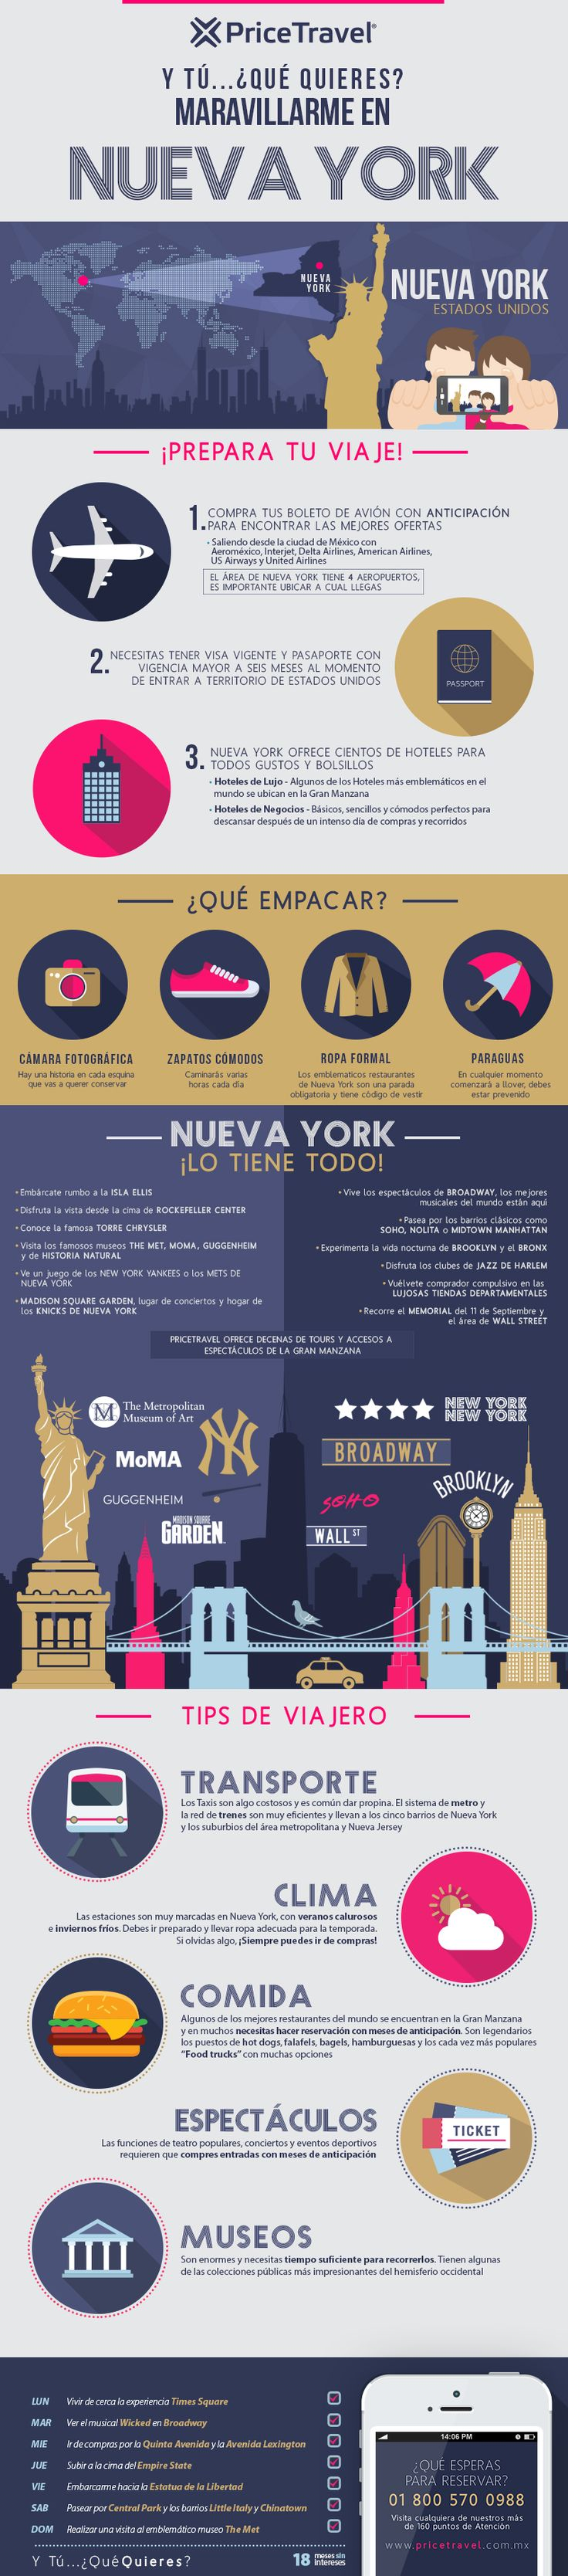 #Infografía sobre qué hacer en Nueva York. Tips de viaje para descubrir Nueva York, lugares de interés, qué empacar. ¡Te lo decimos todo!